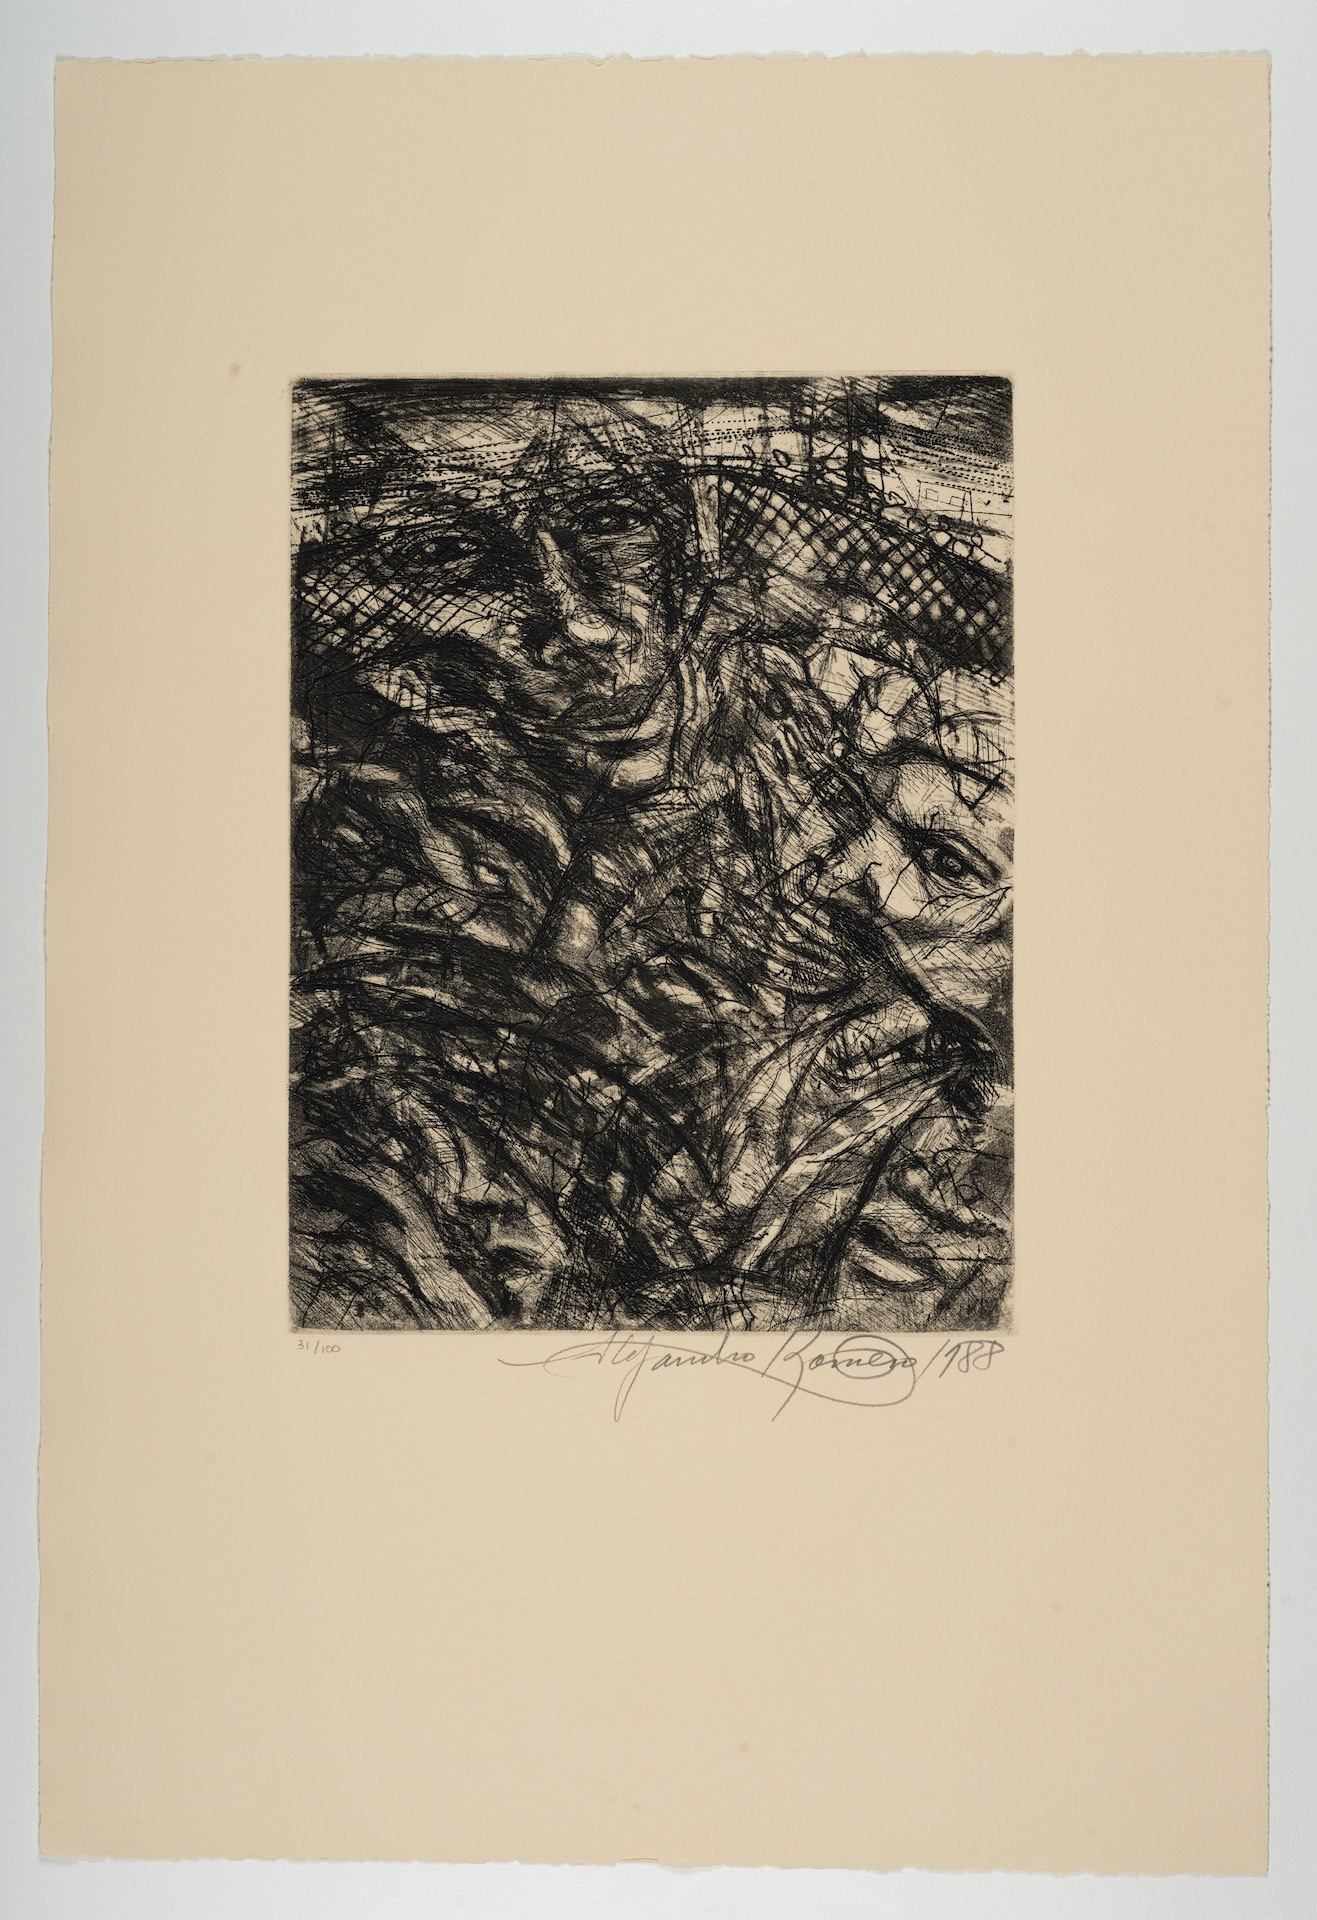 Alejandro Romero, Magueyes II [Magueys II], from The New Immigration series, 1988, aquatint with etching, 22 1/16 x 14 15/16 in. (56 x 37.9 cm), Faces and figures overlayed with imagery of barbed wire in the background, Blanton Museum of Art, The University of Texas at Austin, Gift of Gilberto Cardenas, 2017